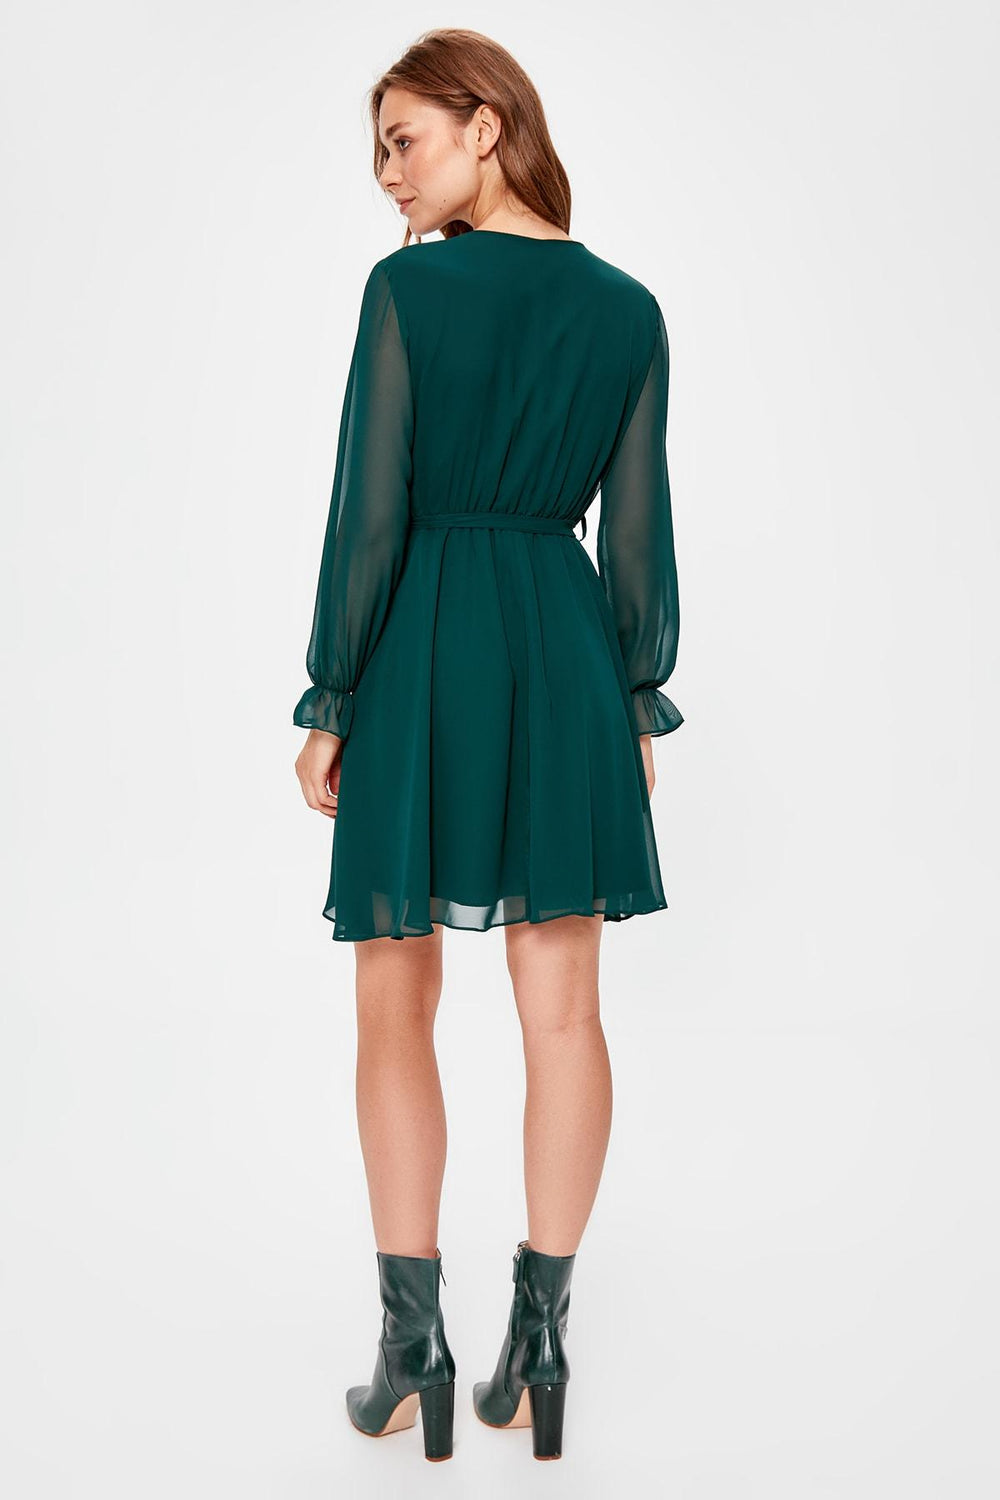 Emerald green Belted Dress - Top Maxy